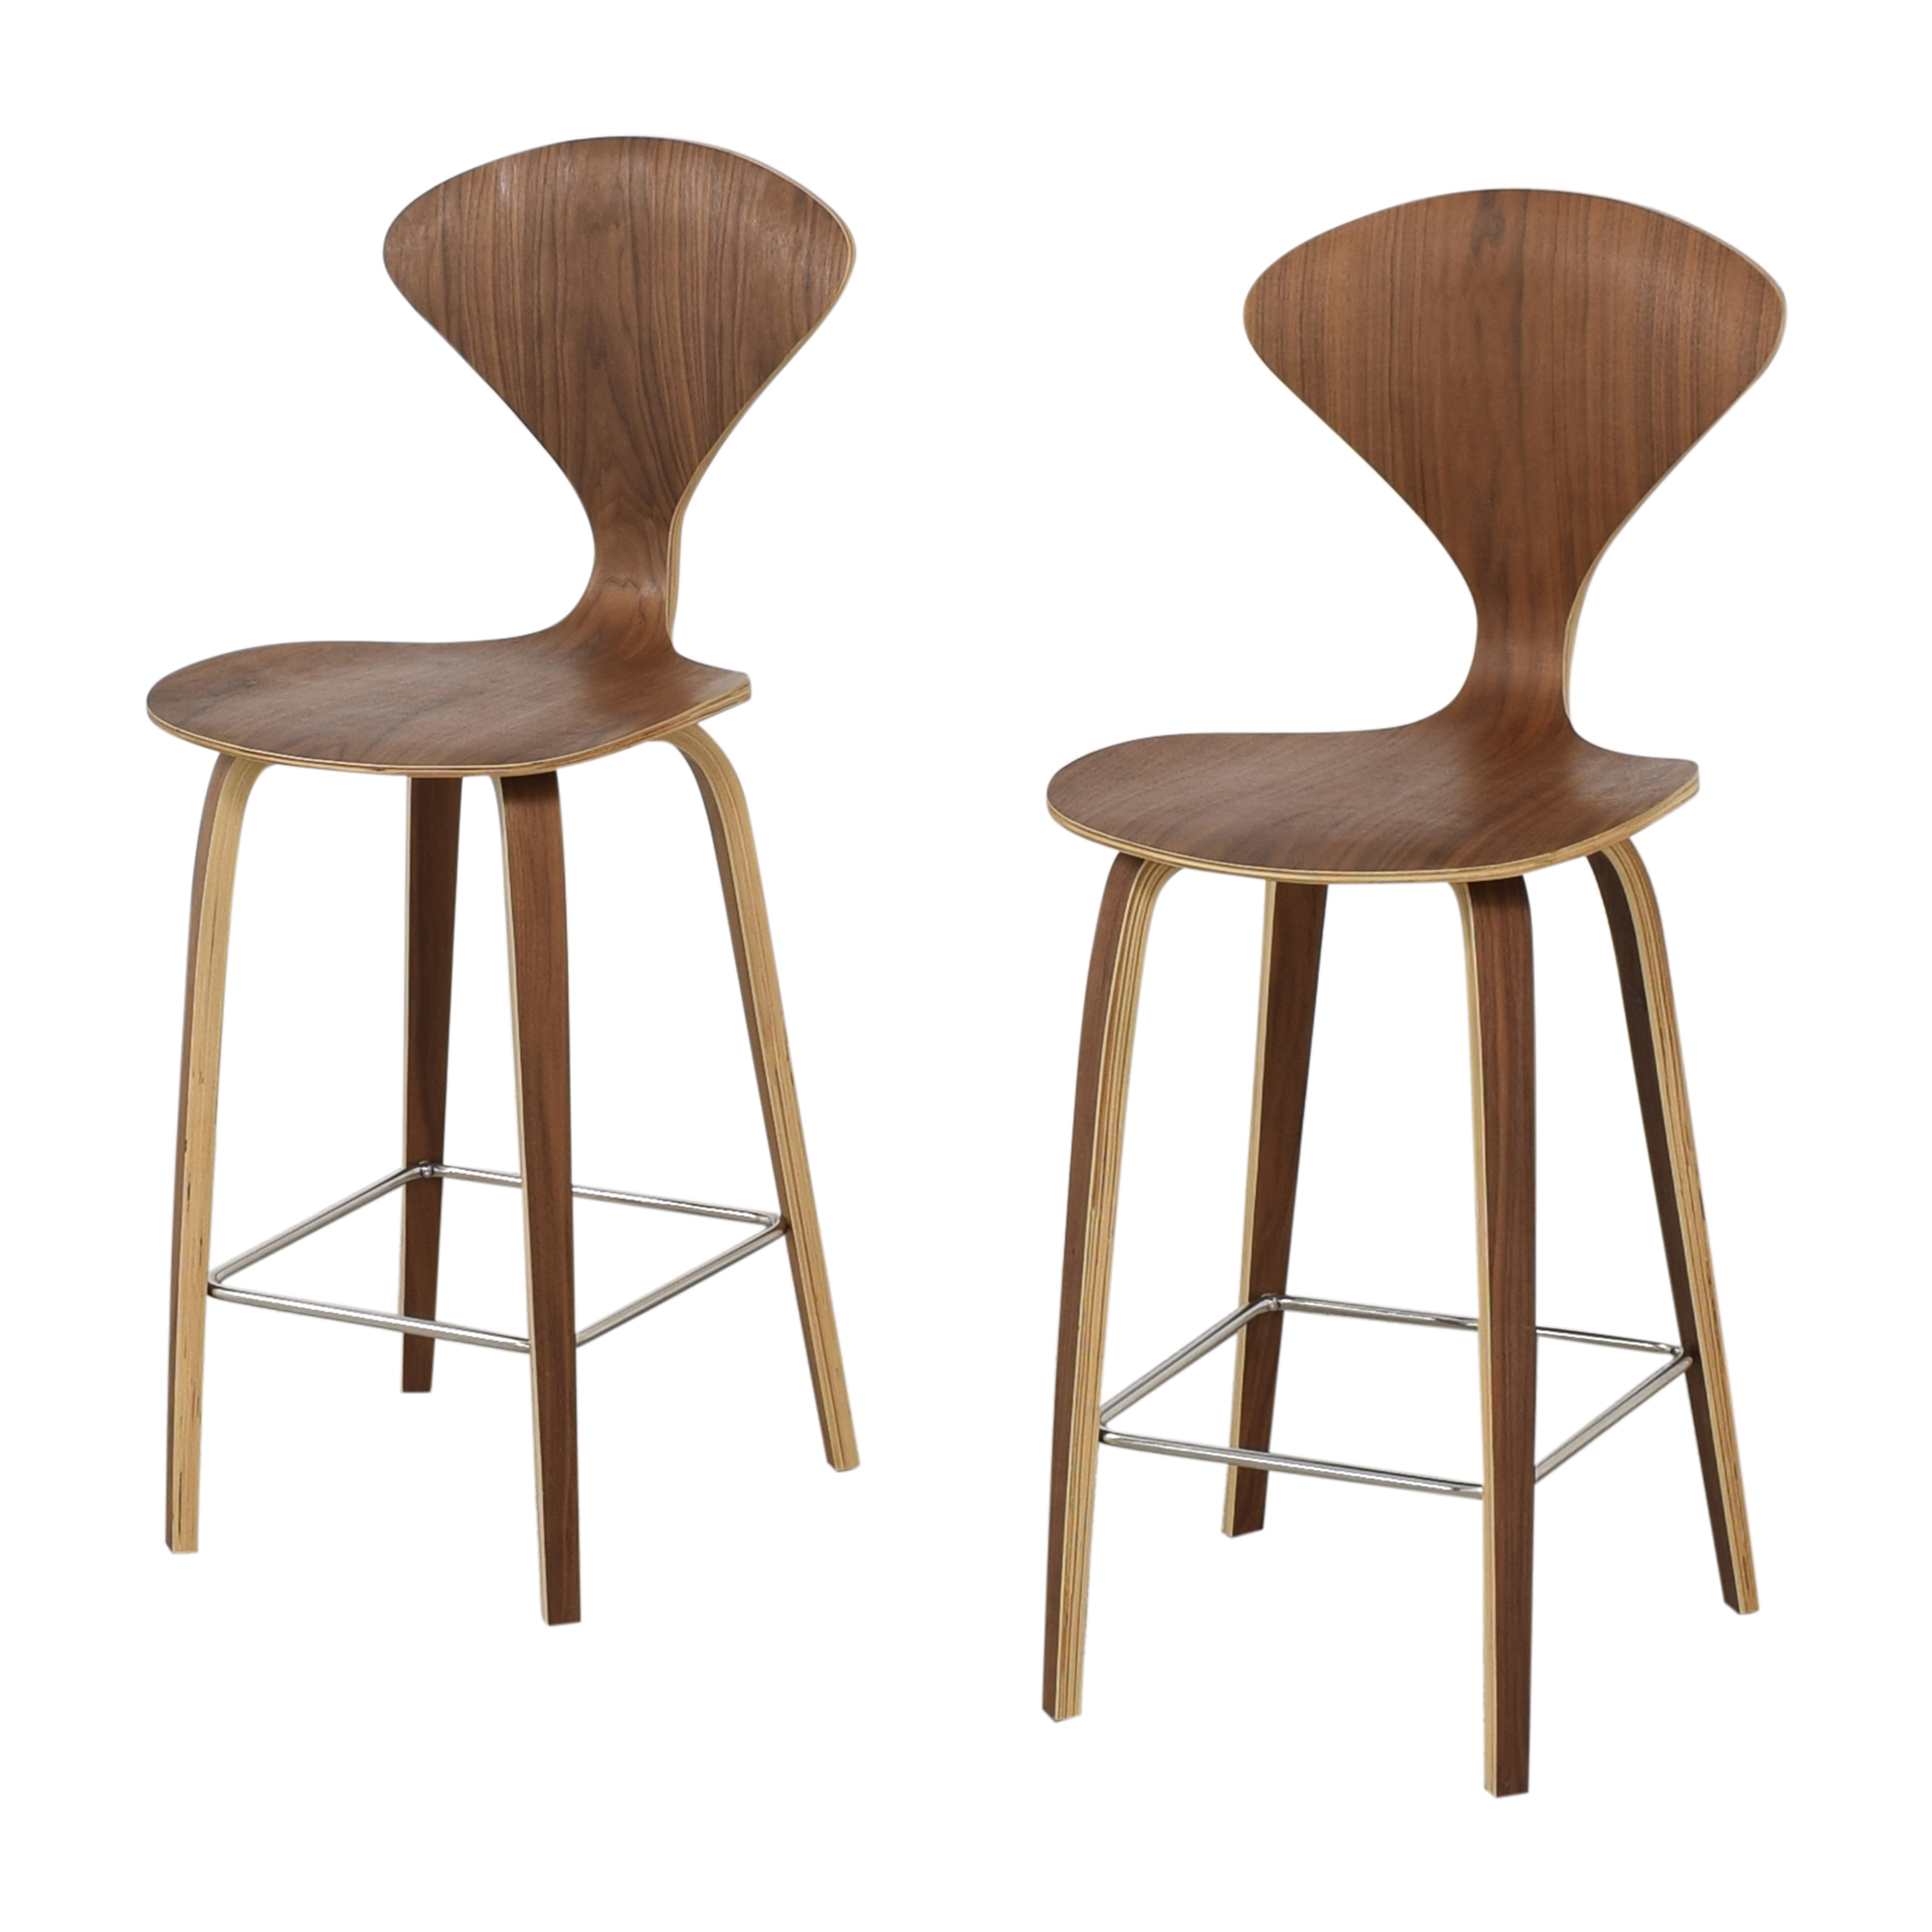 Rove Concepts Rove Concepts Norman Counter Stools nj